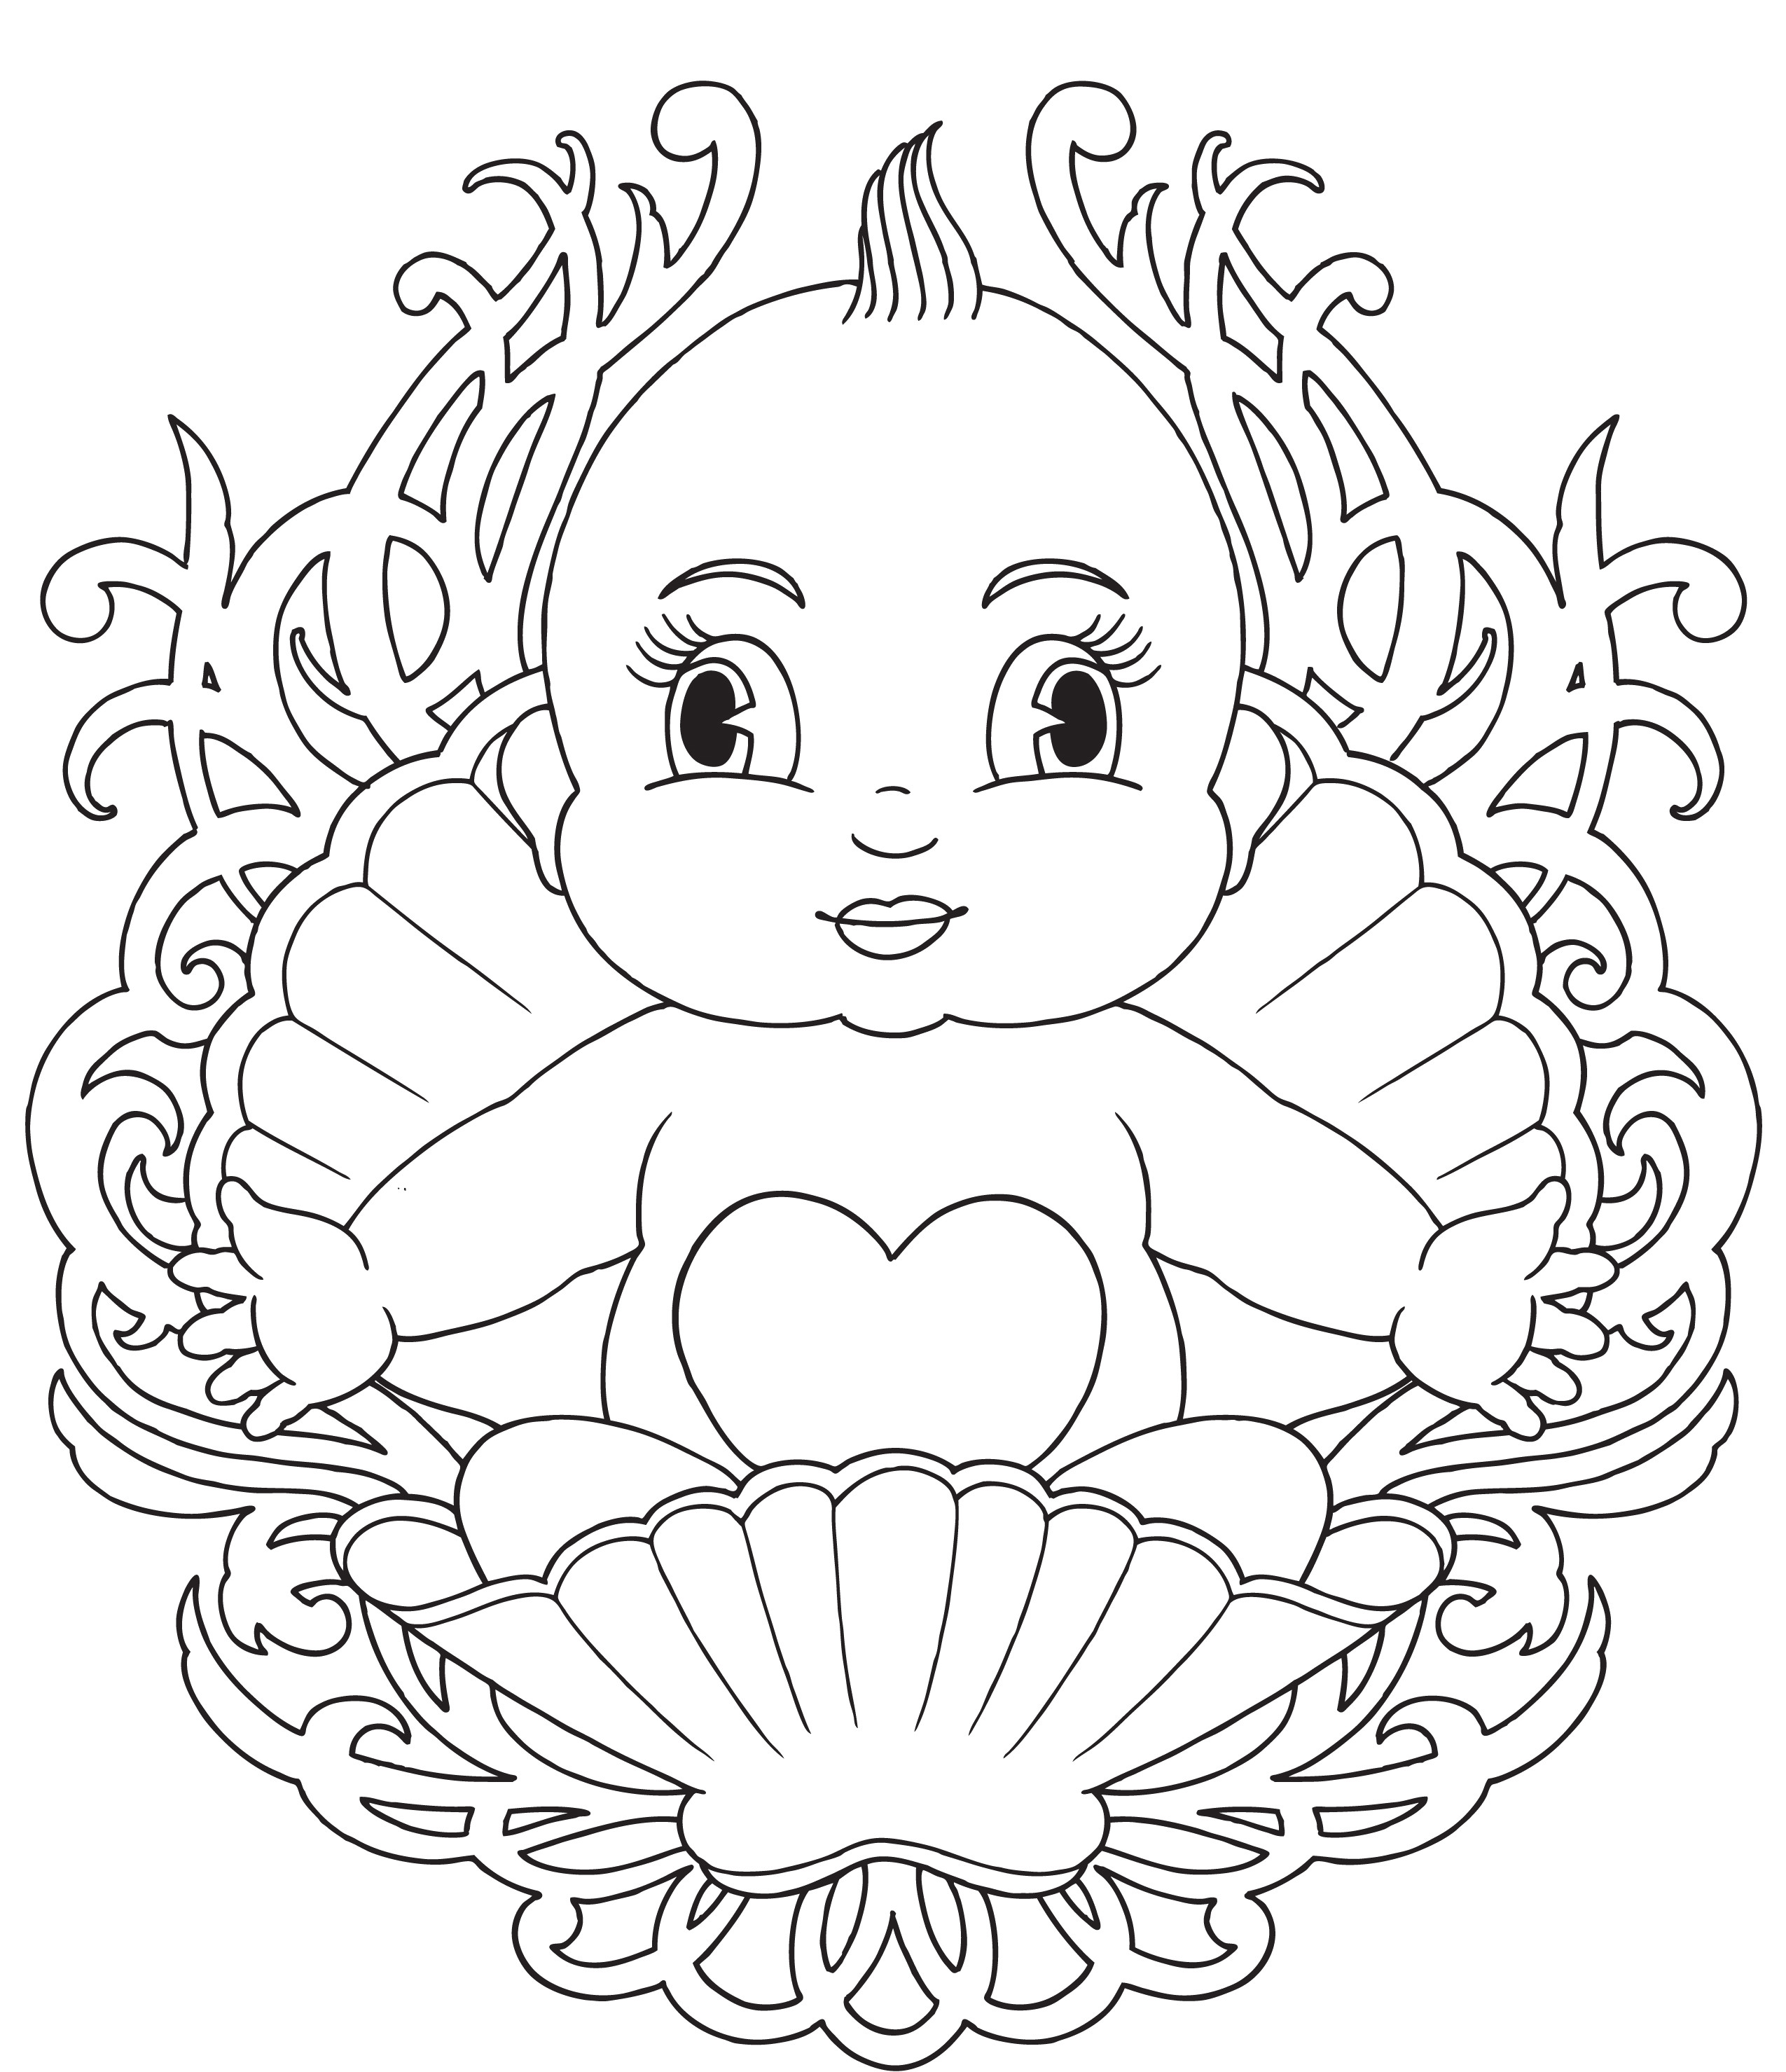 Baby Coloring Pages For Kids  Free Printable Baby Coloring Pages For Kids